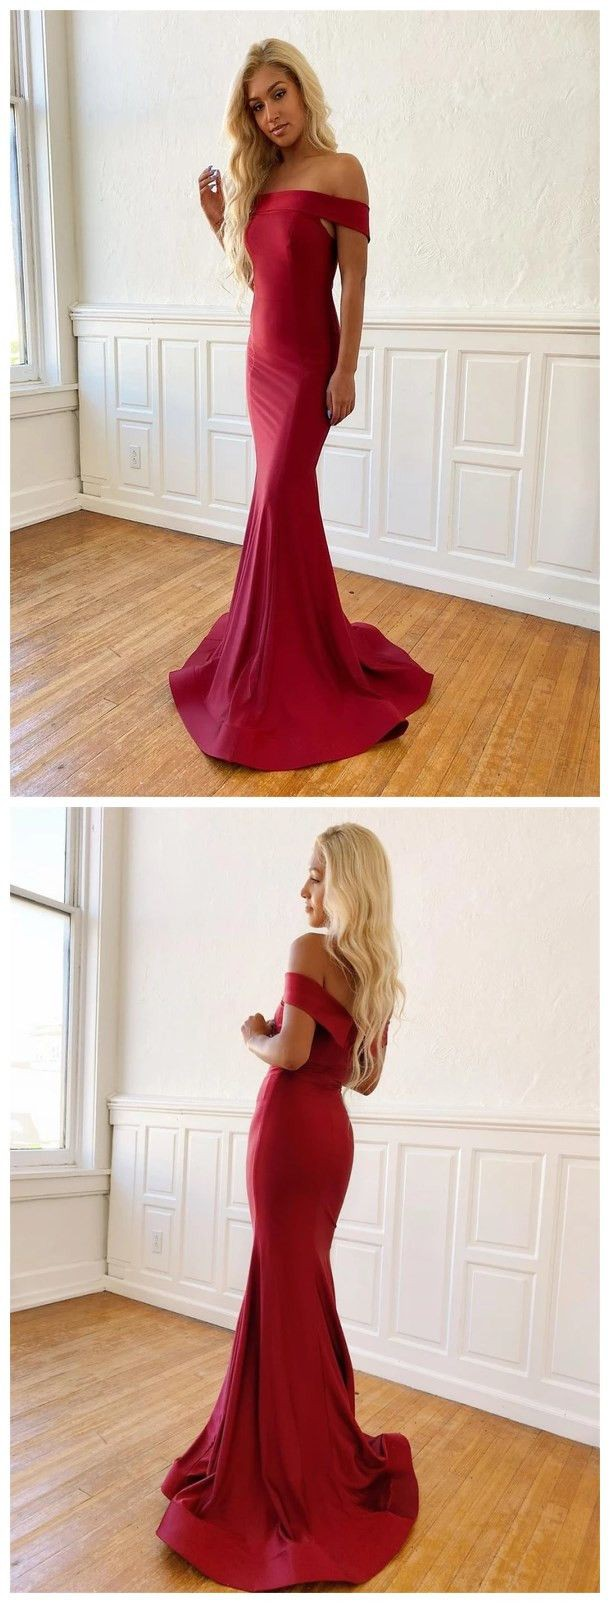 Pink and red lookbook dress with strapless dress, cocktail dress, wedding dress